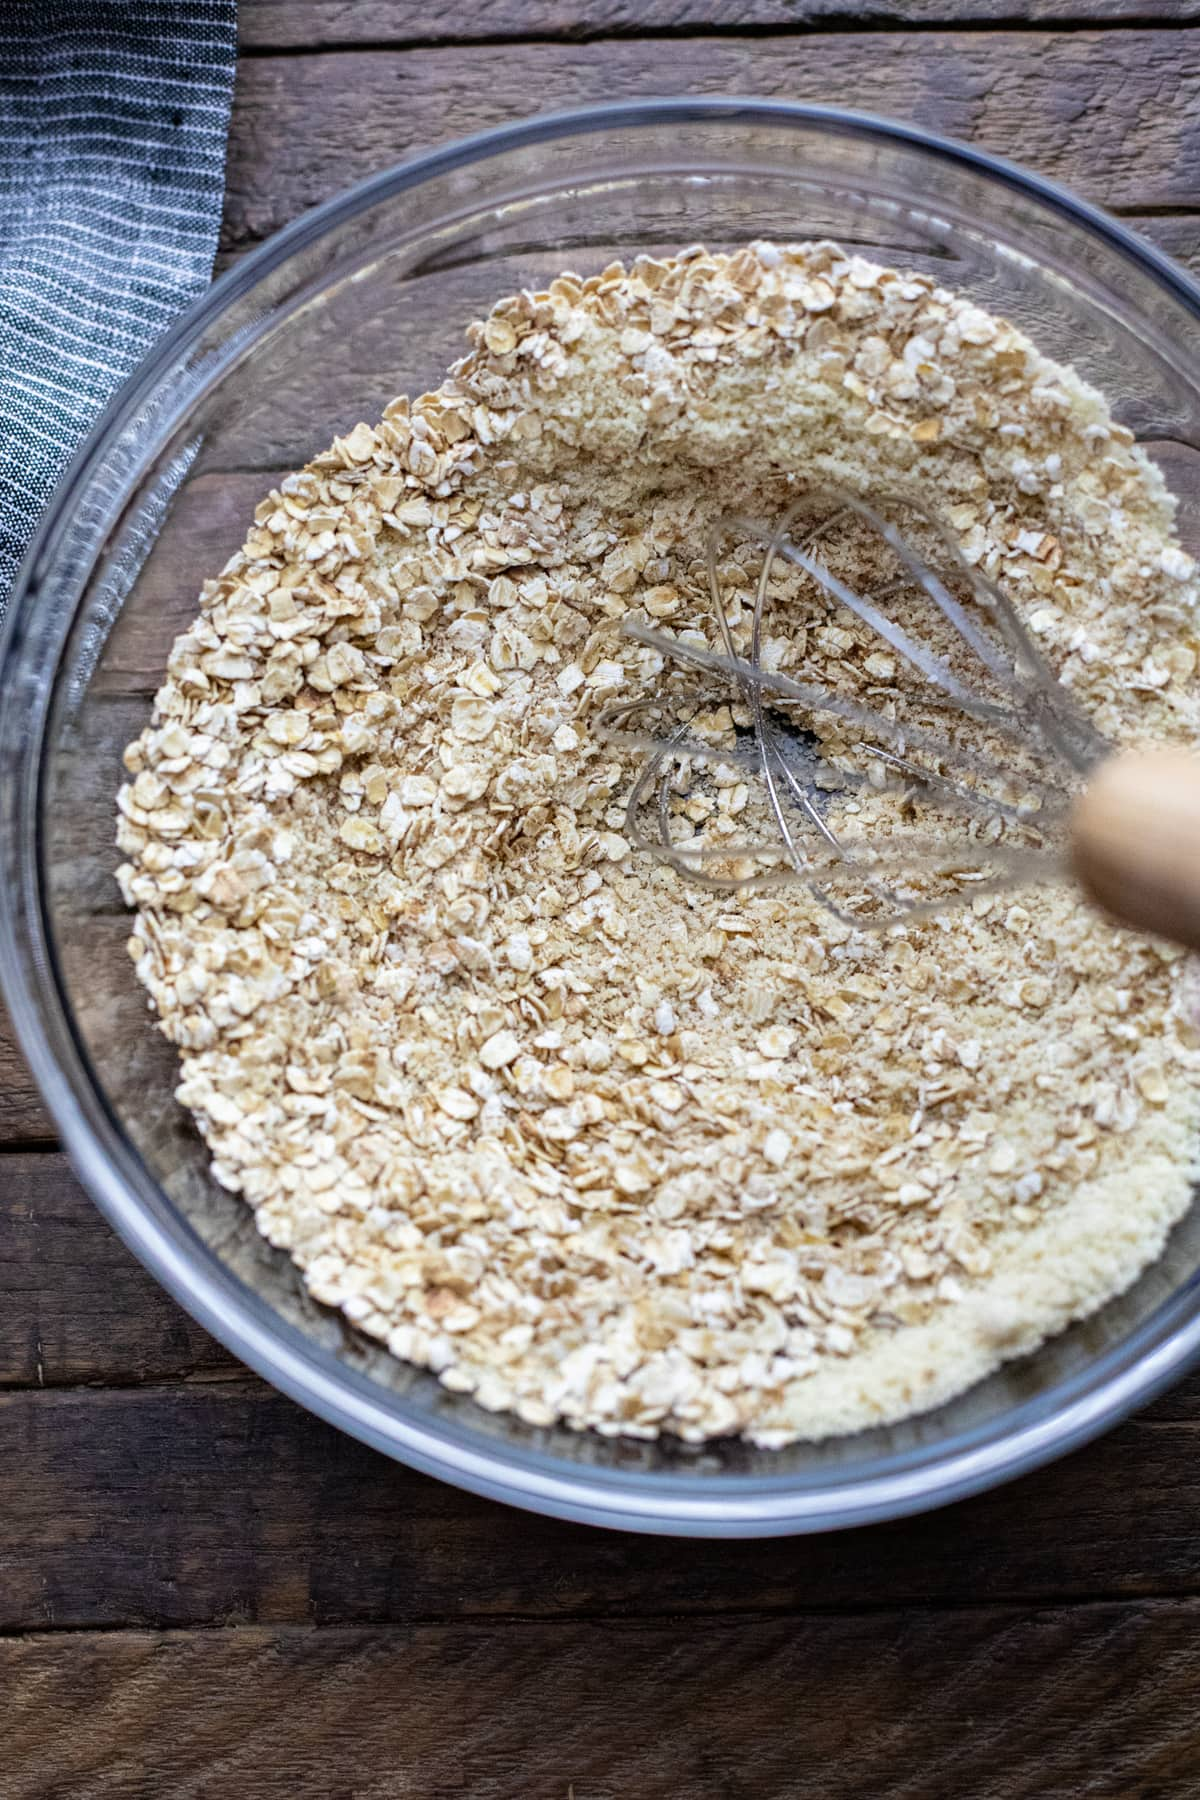 dry ingredients being whisked in a clear glass bowl.